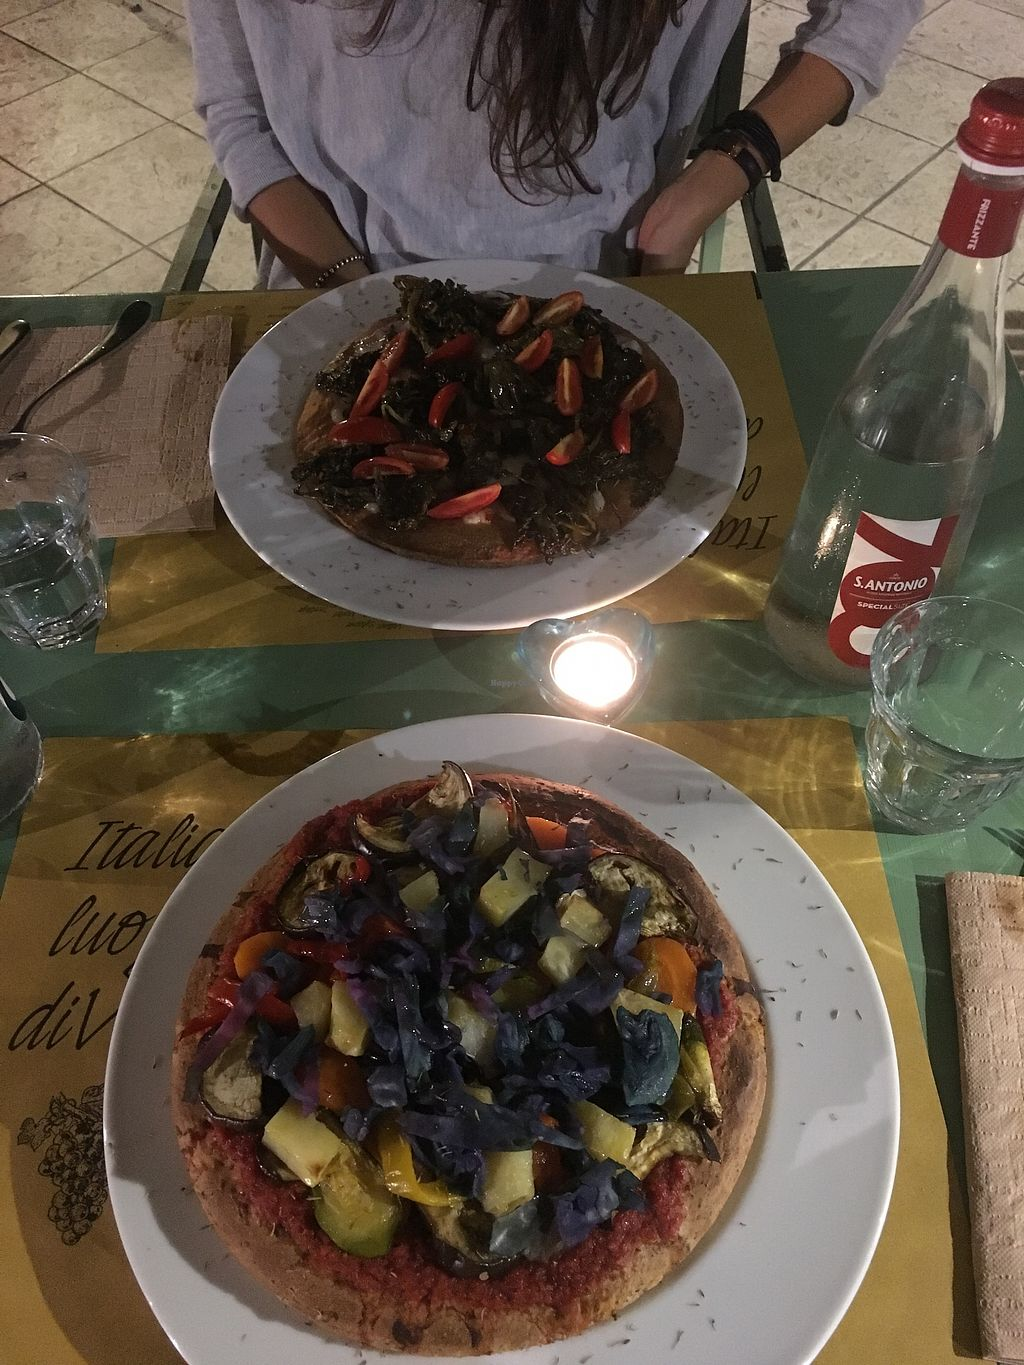 "Photo of New Busky  by <a href=""/members/profile/ValentinaCarlotto"">ValentinaCarlotto</a> <br/>Gourmet pizza <br/> February 23, 2018  - <a href='/contact/abuse/image/112867/362687'>Report</a>"